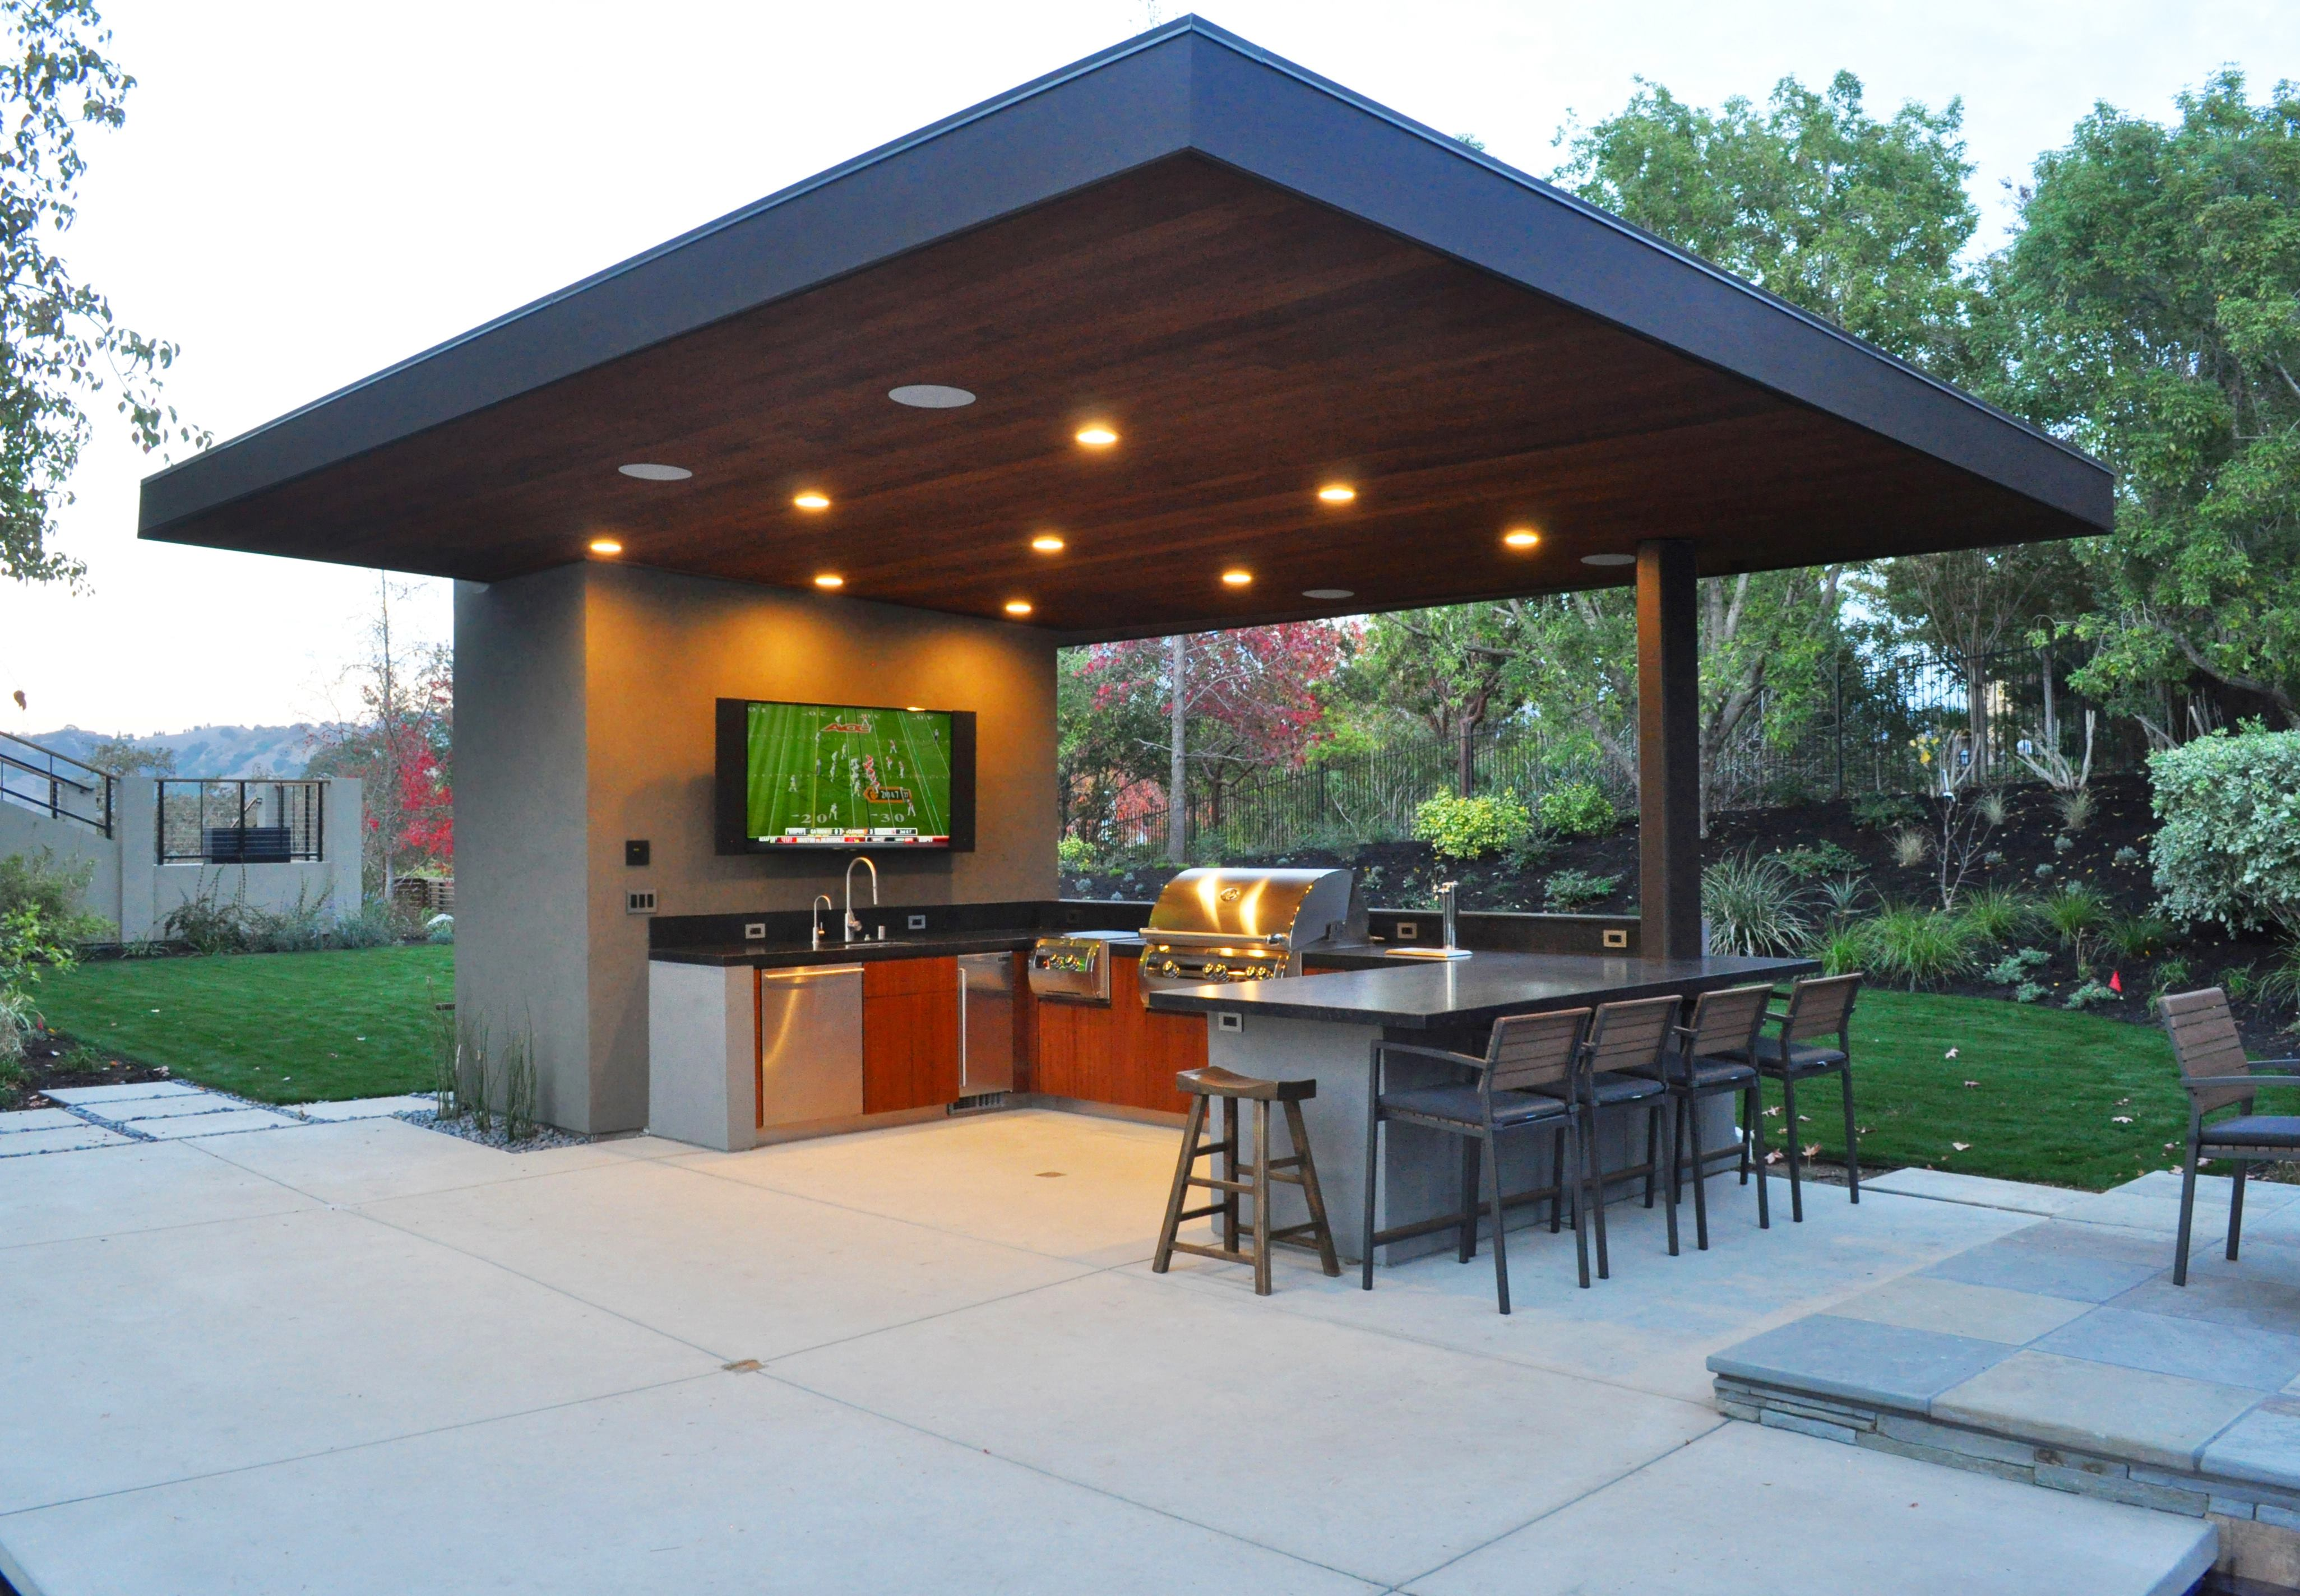 10 outdoor kitchen designs we love builder magazine for Outdoor kitchen pavilion designs